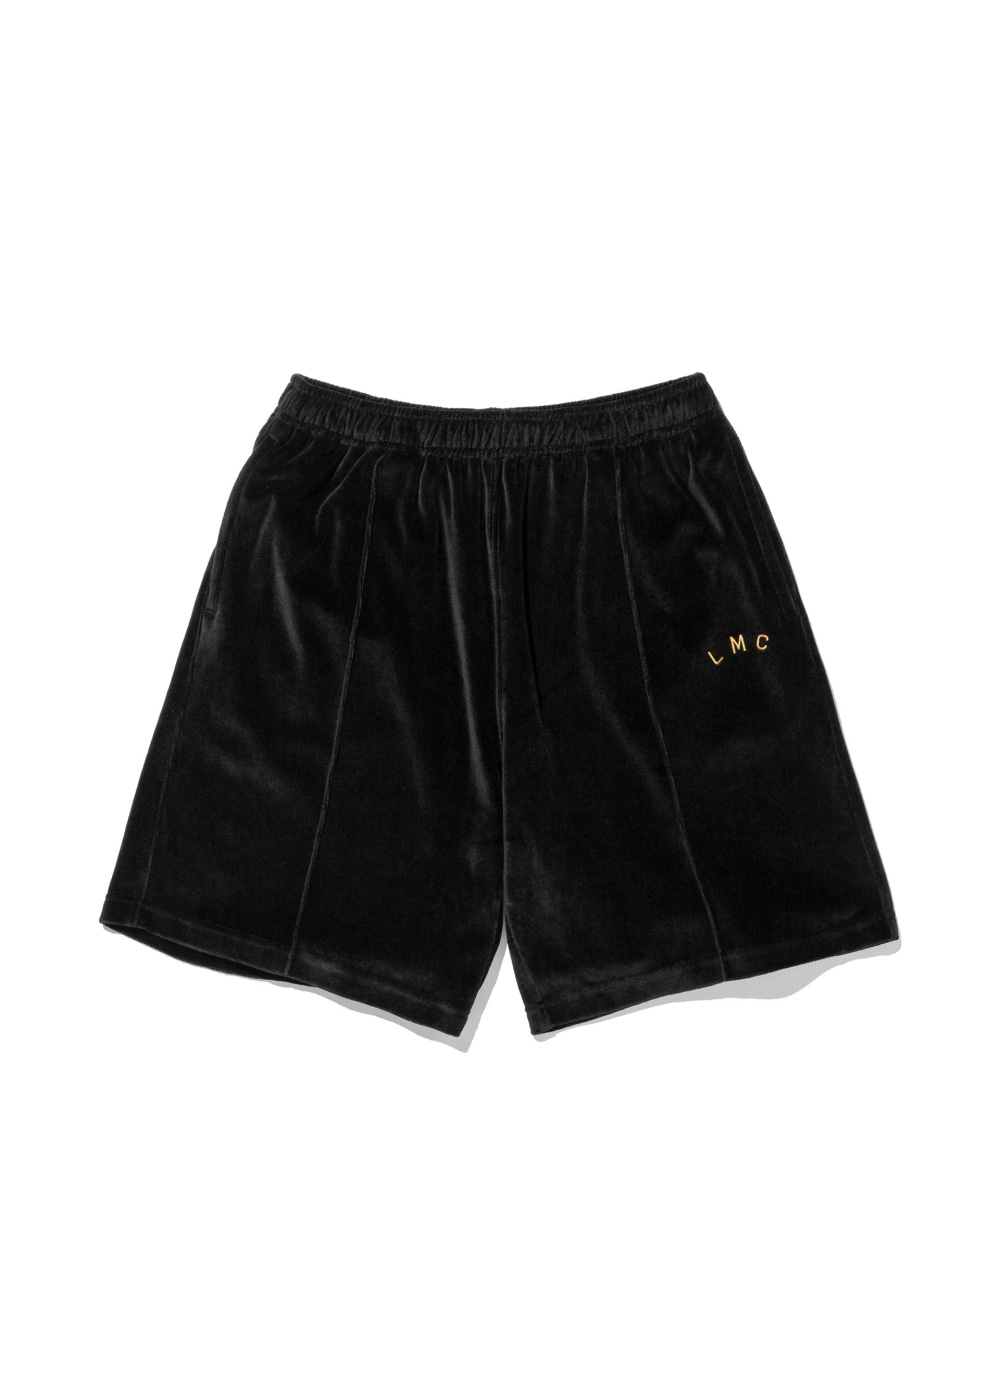 LMC RED LABEL VELOUR SHORTS black